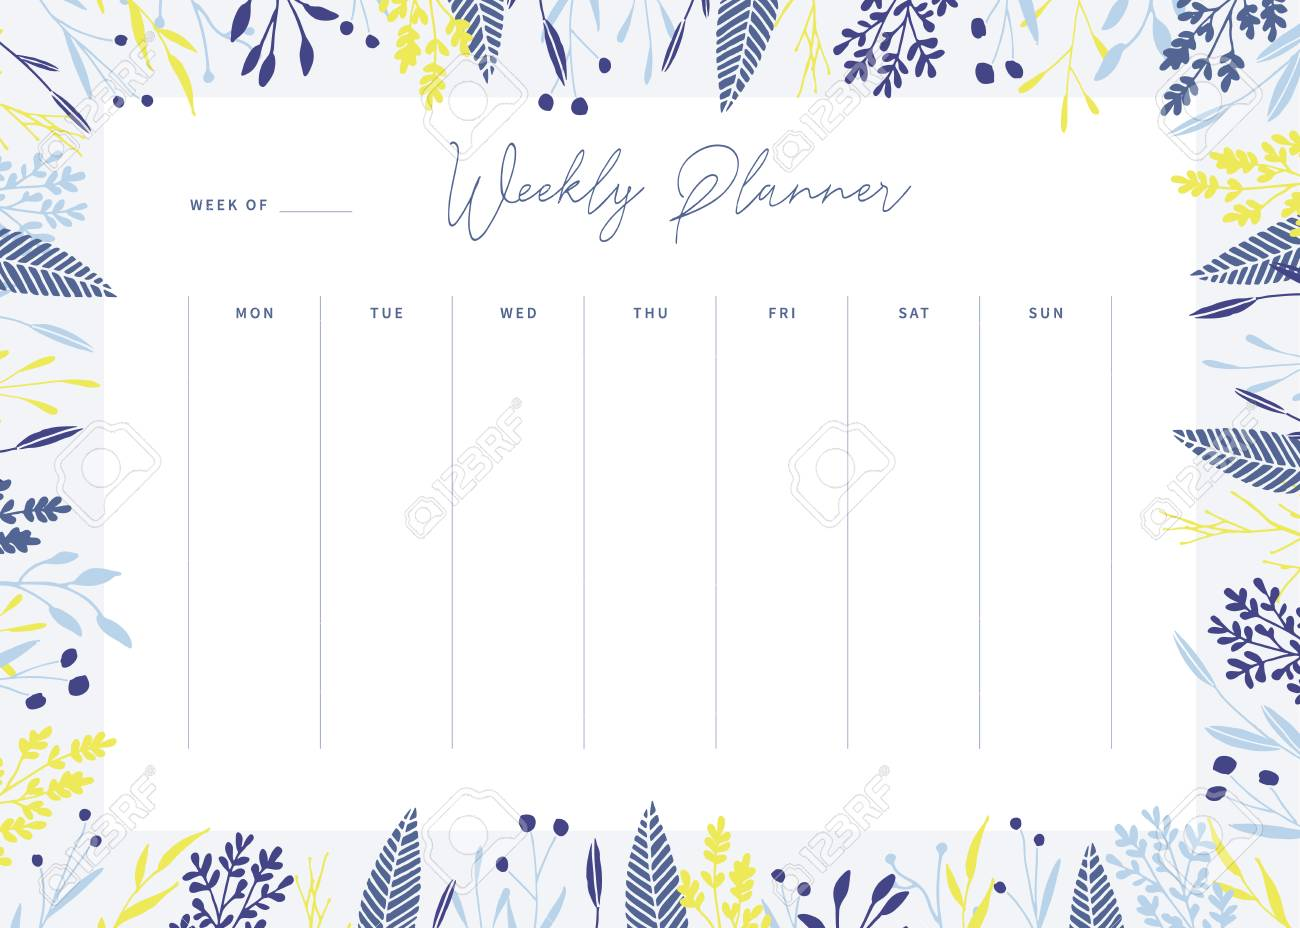 graphic regarding Weekly Printable Planner titled Lovable vector weekly planner template. Sophisticated floral pastel tone..